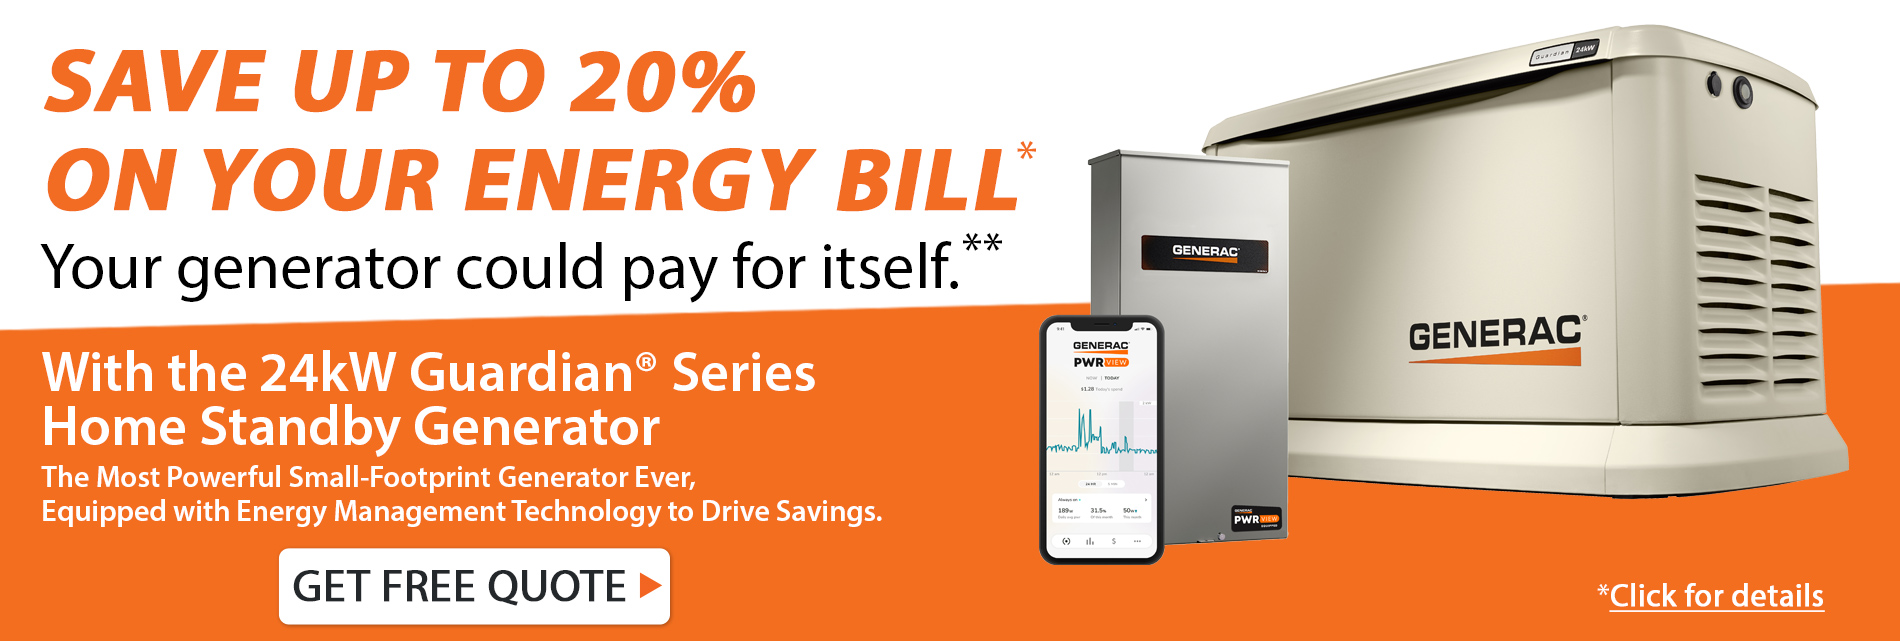 Save 20 Percent On Your Energy Bill